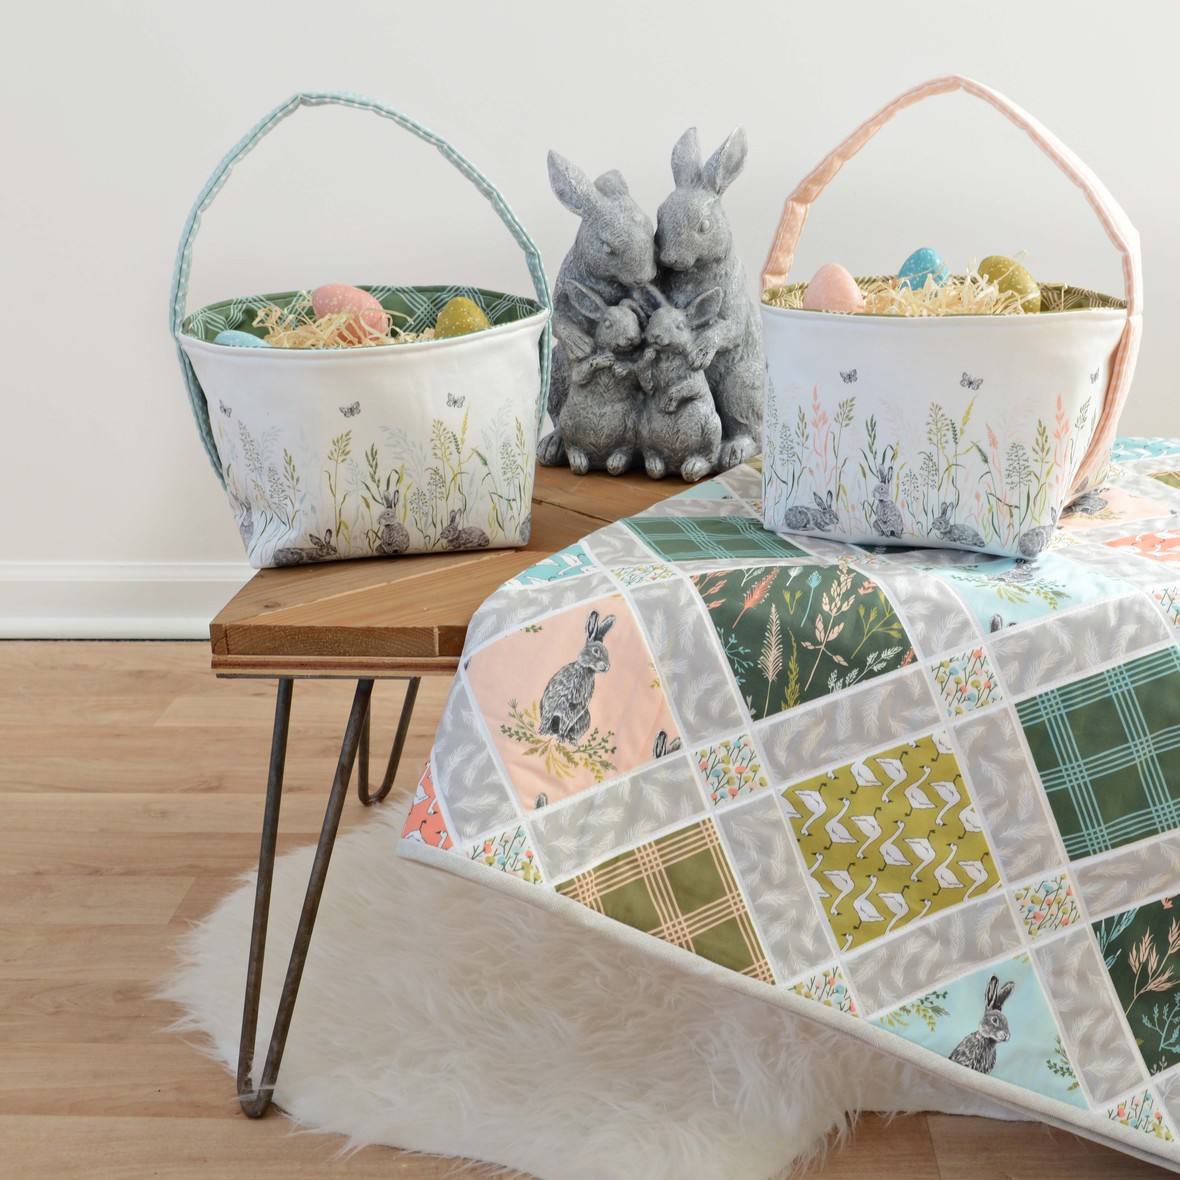 Meadow Fabric Easter Baskets